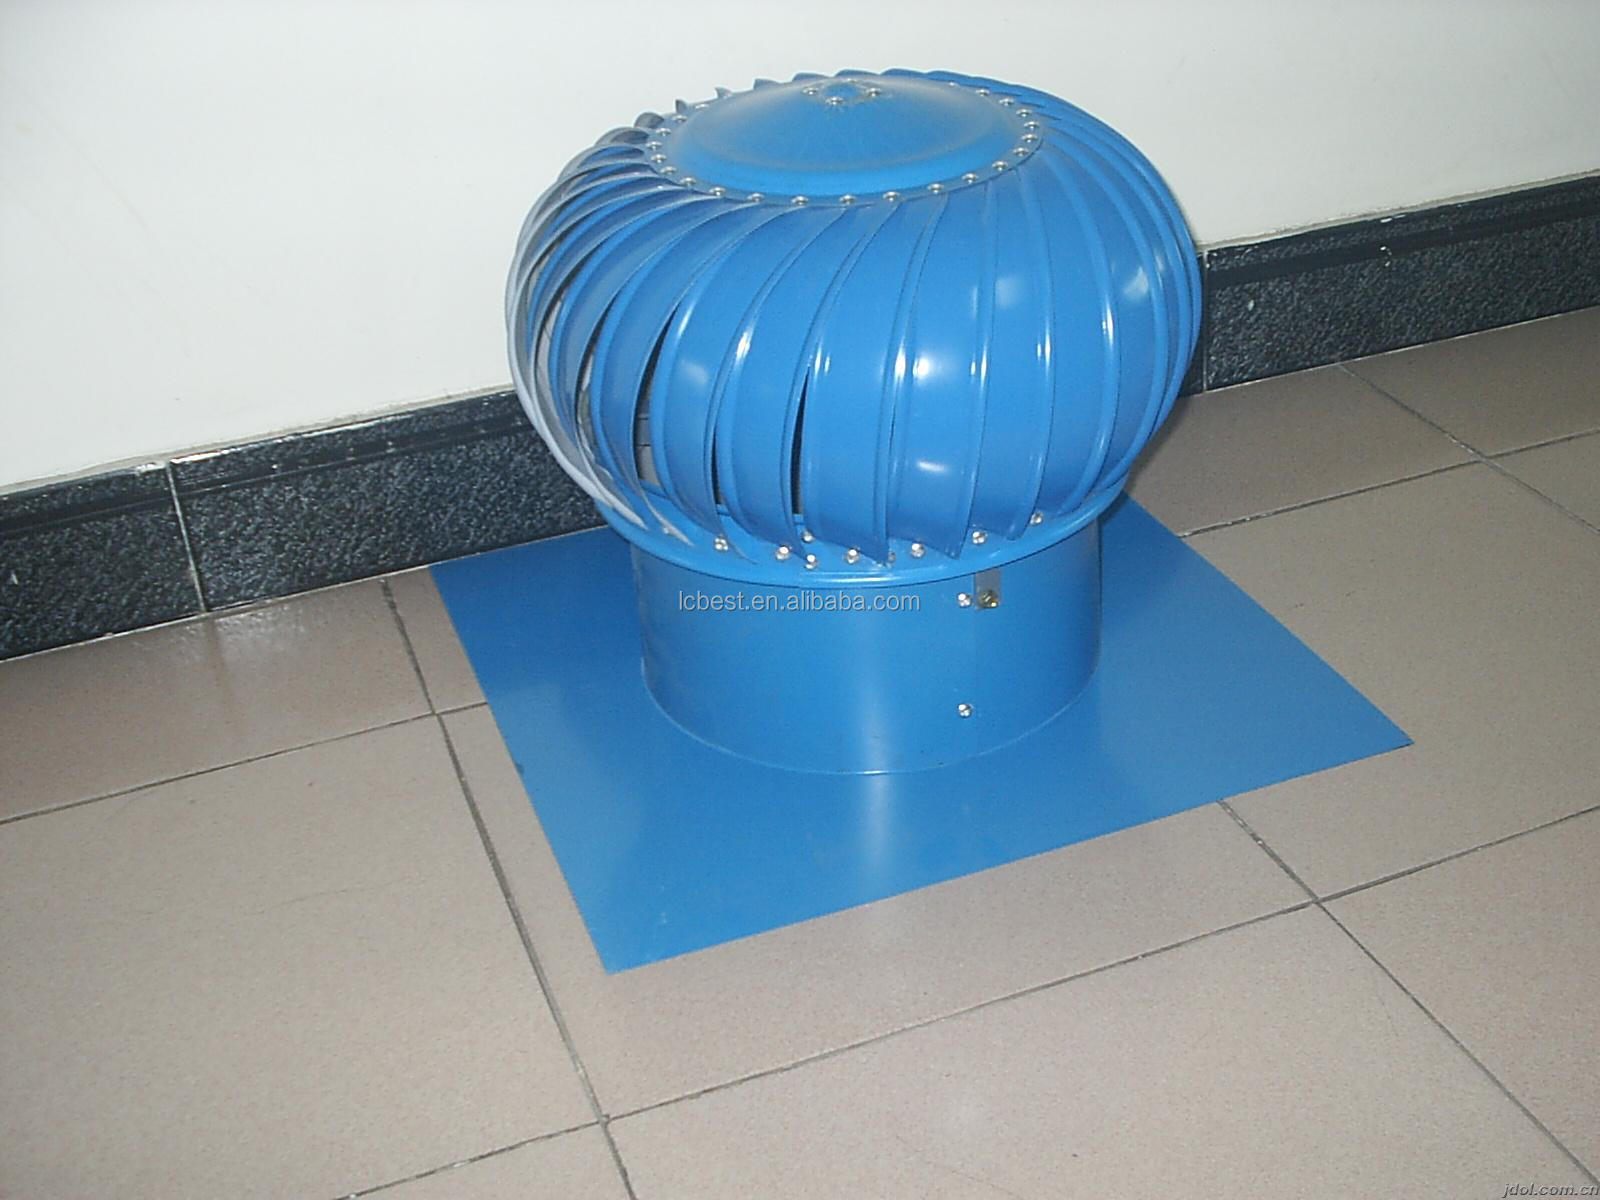 Extractor Fans Product : Mm extractor fans best made in china roof wind